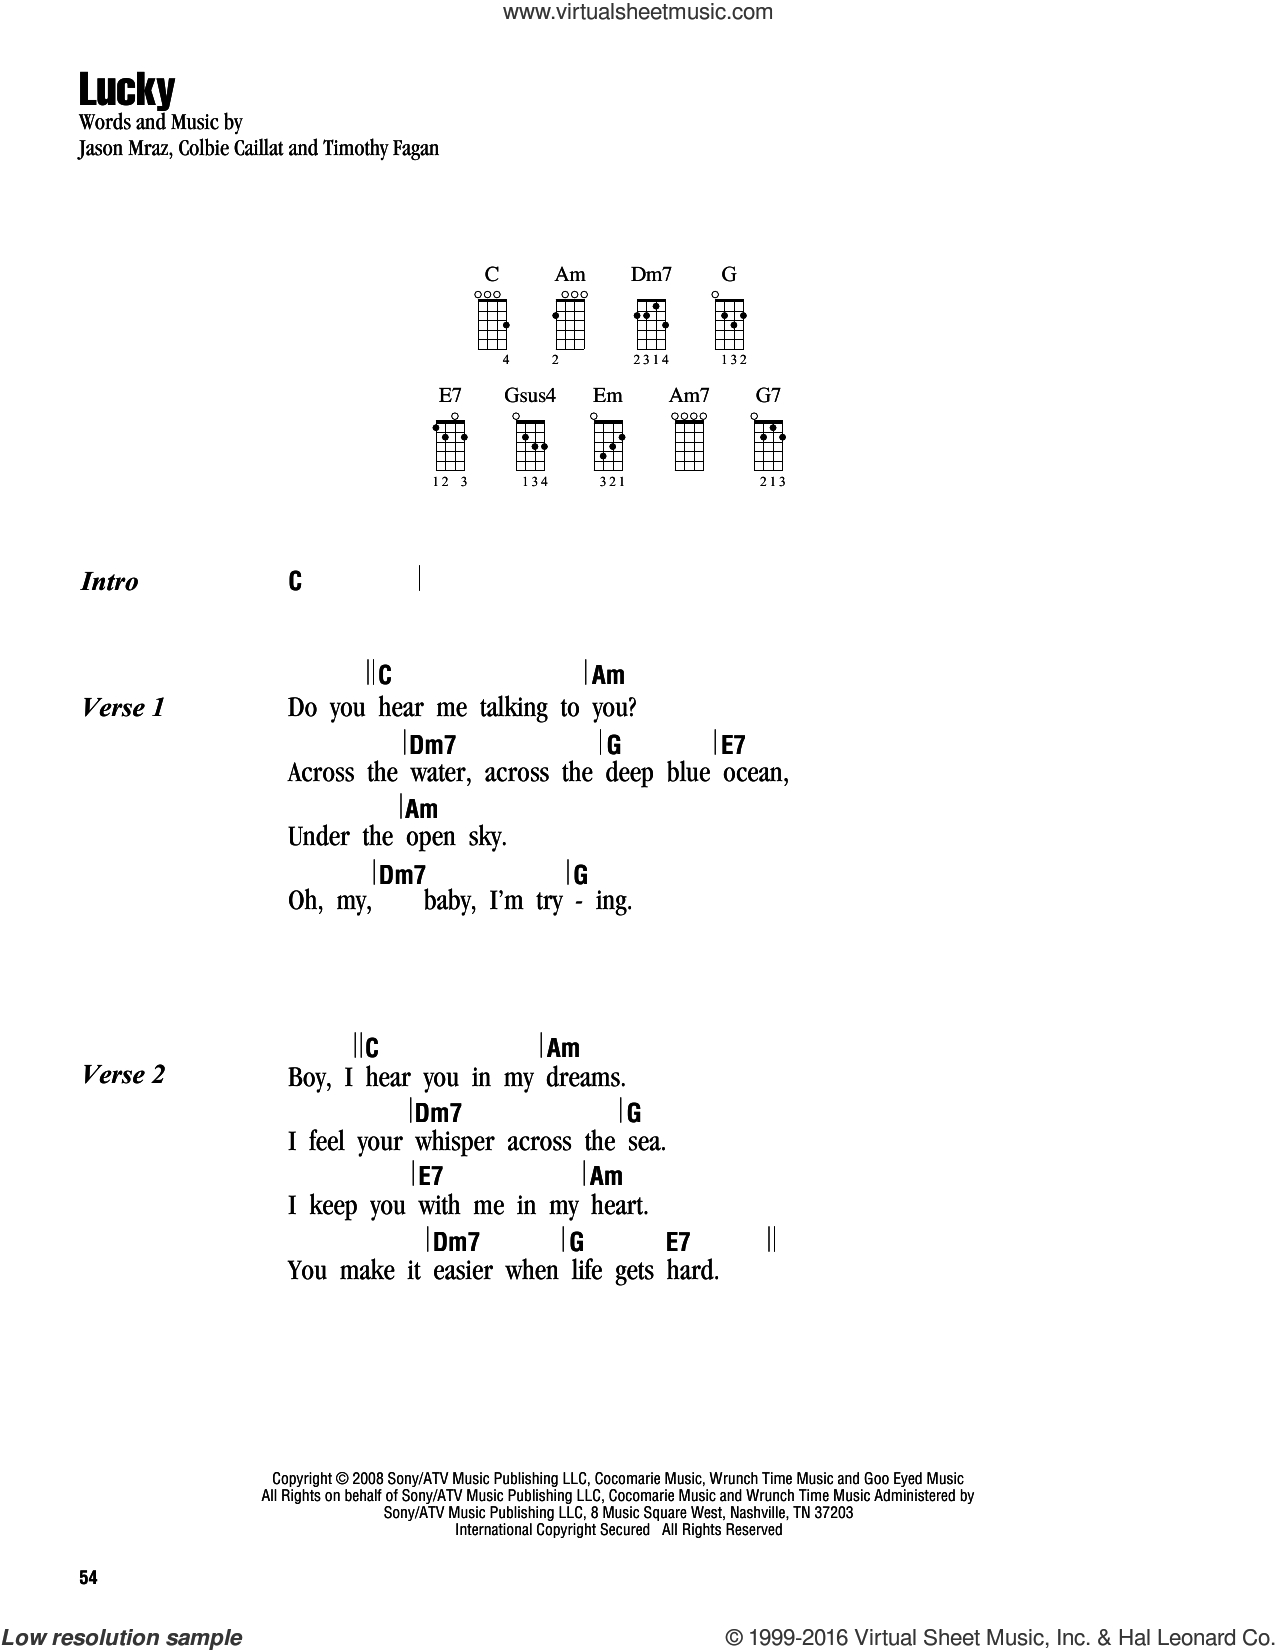 21 Guns Chords Caillat Lucky Sheet Music For Ukulele Chords Pdf